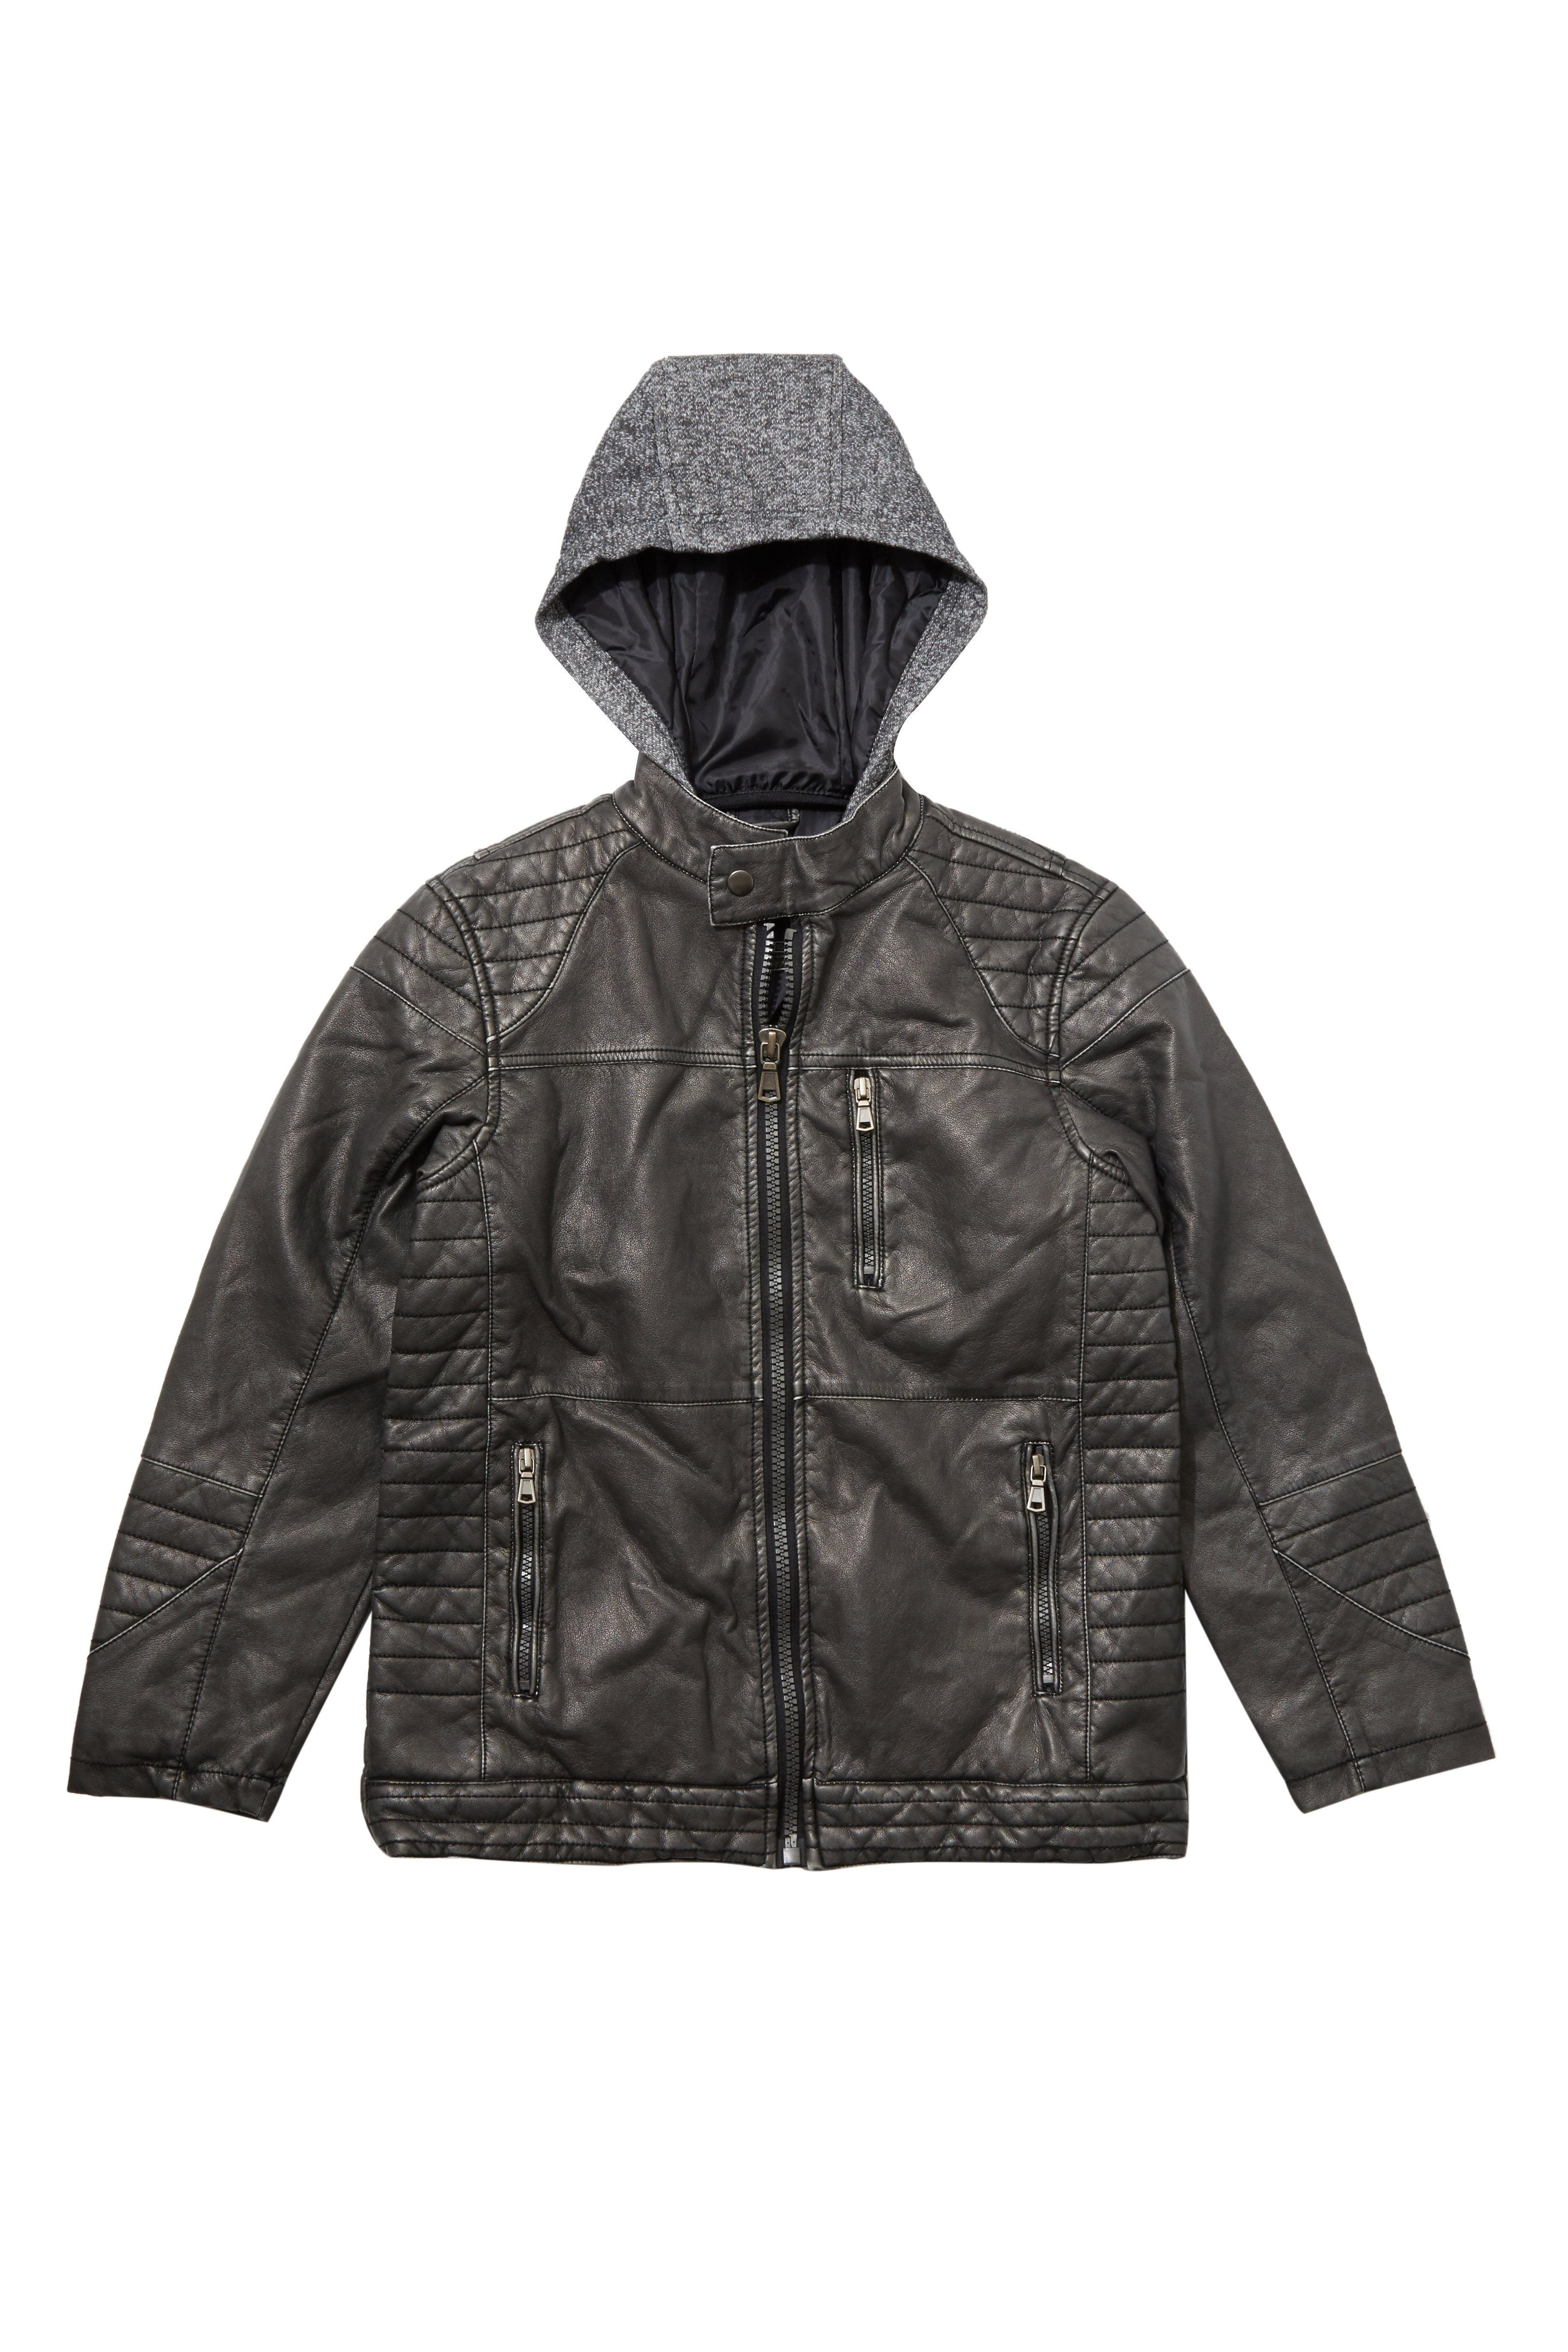 Jacket Boy - Vegan Leather Moto Jacket With Knit Hoodie